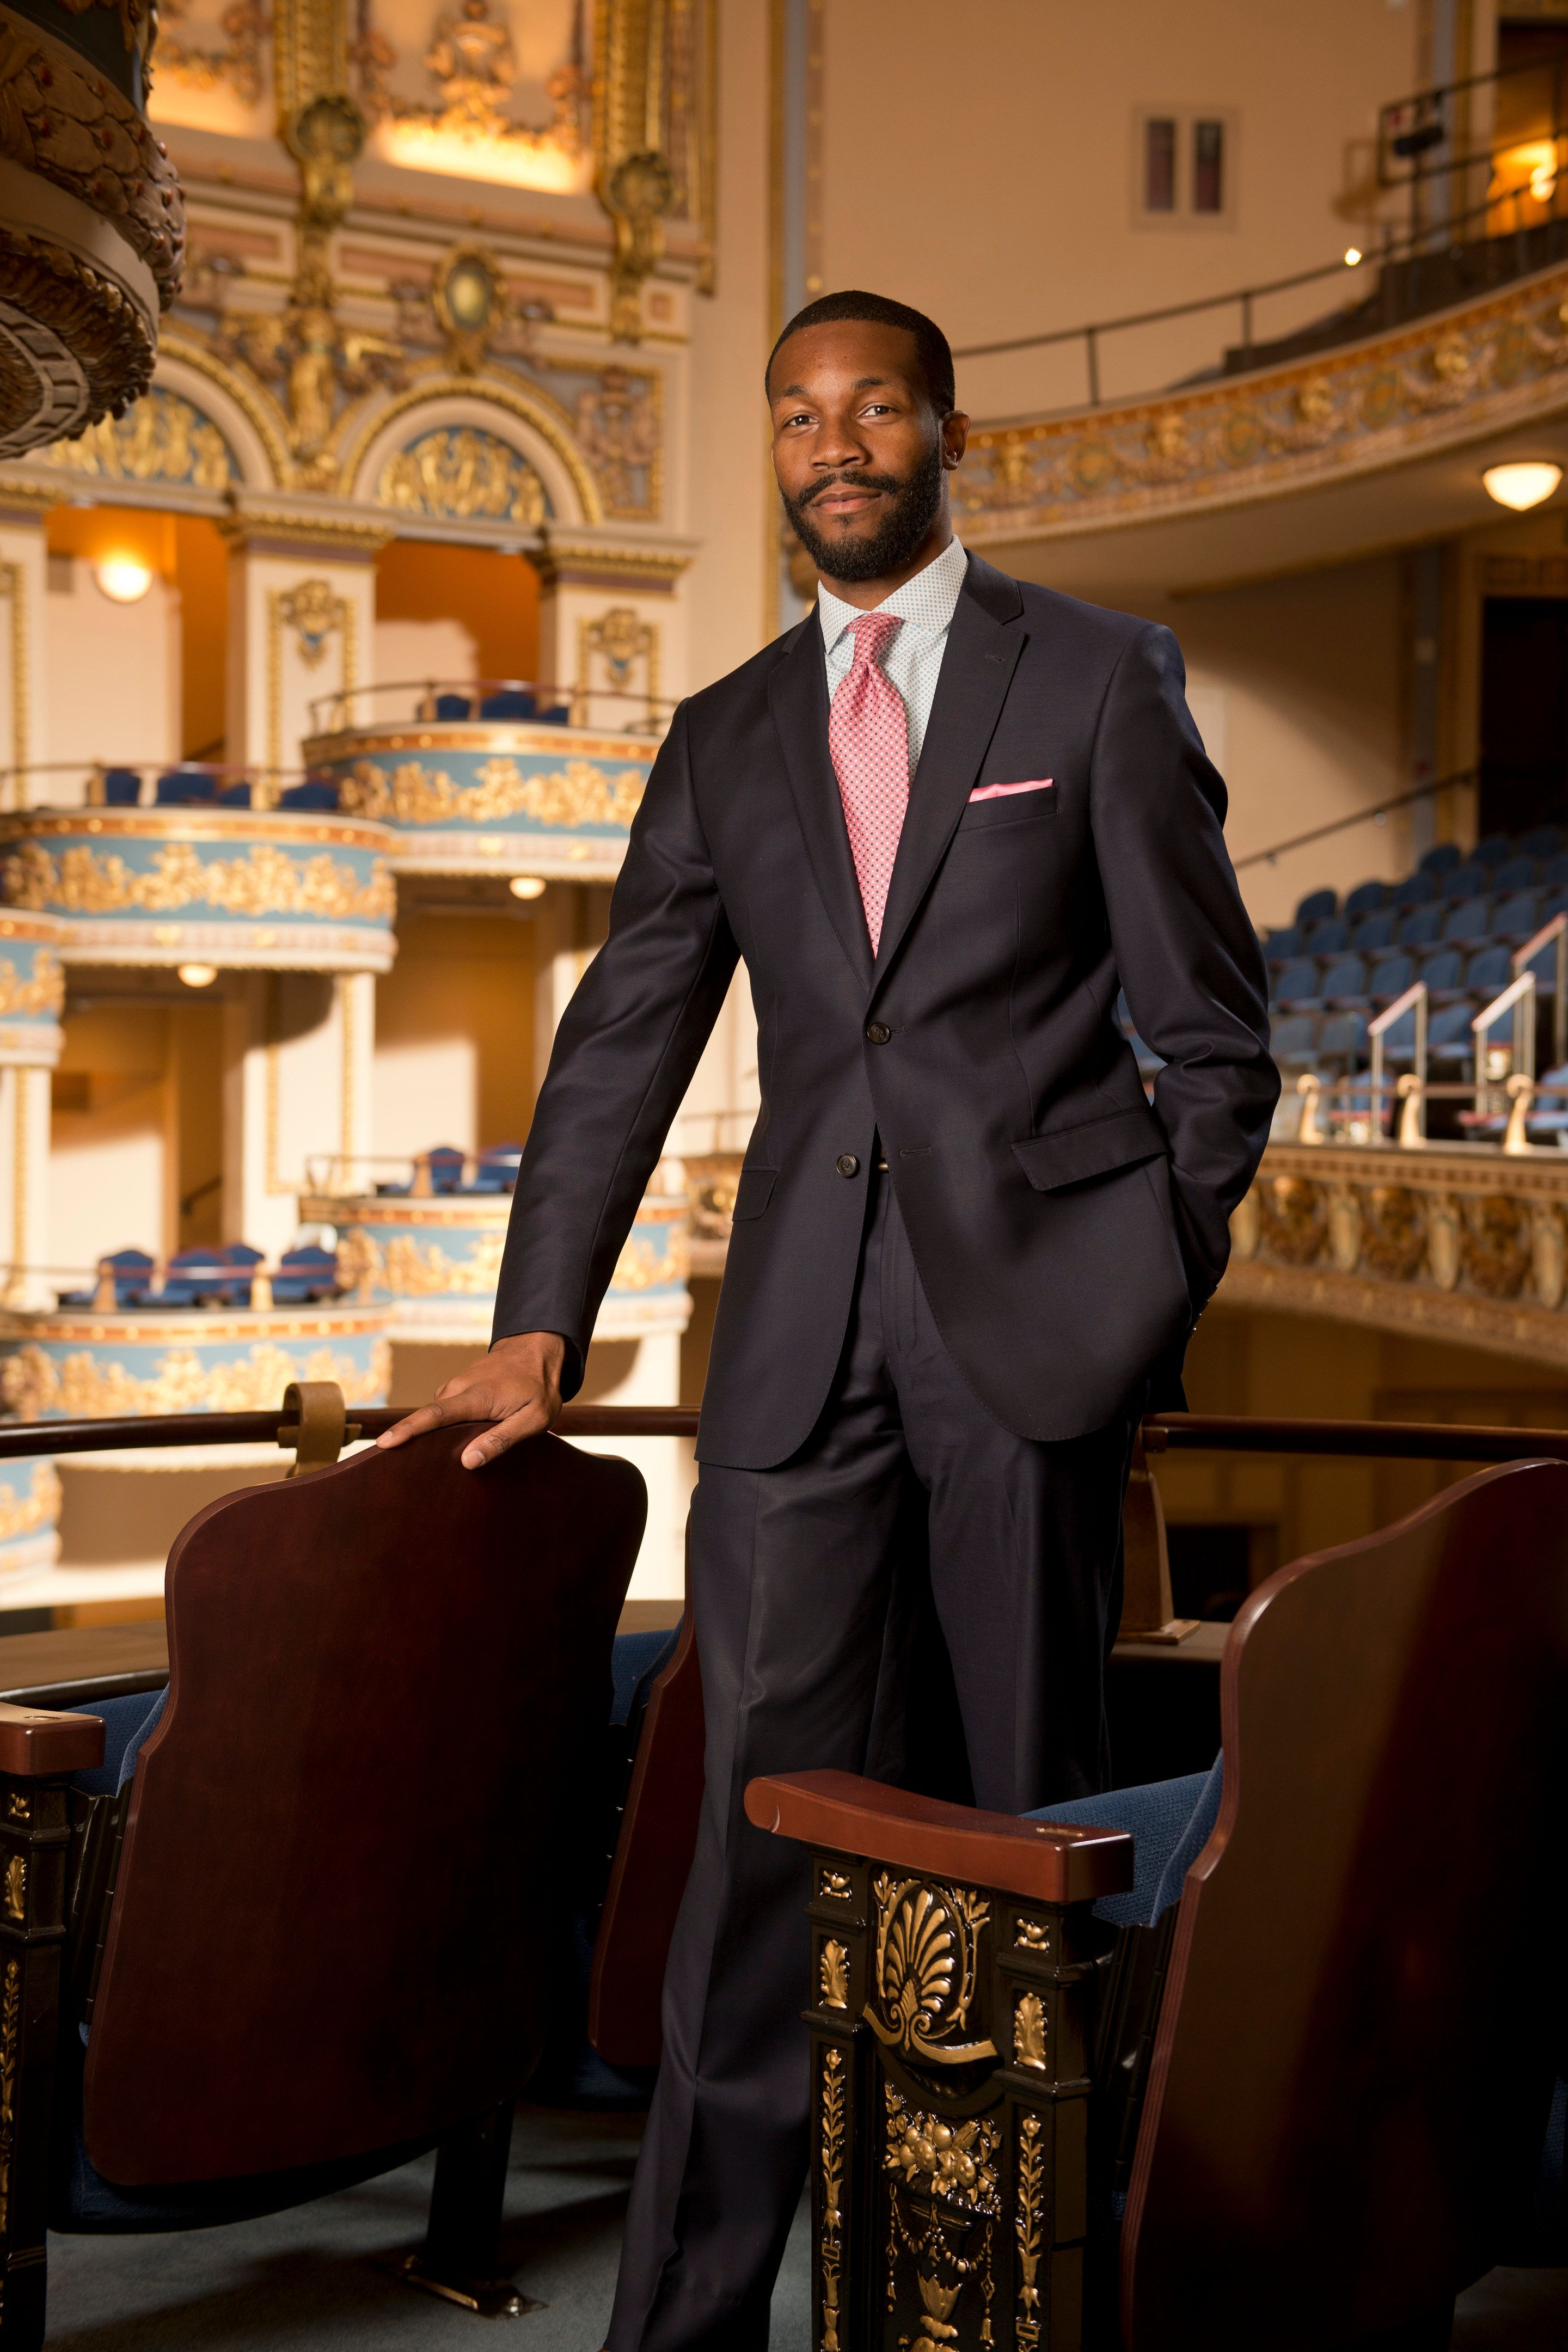 Randall Woodfin 36 is challenging Birmingham Alabama Mayor William Bell If Woodfin wins he would be the youngest mayor in the citys history